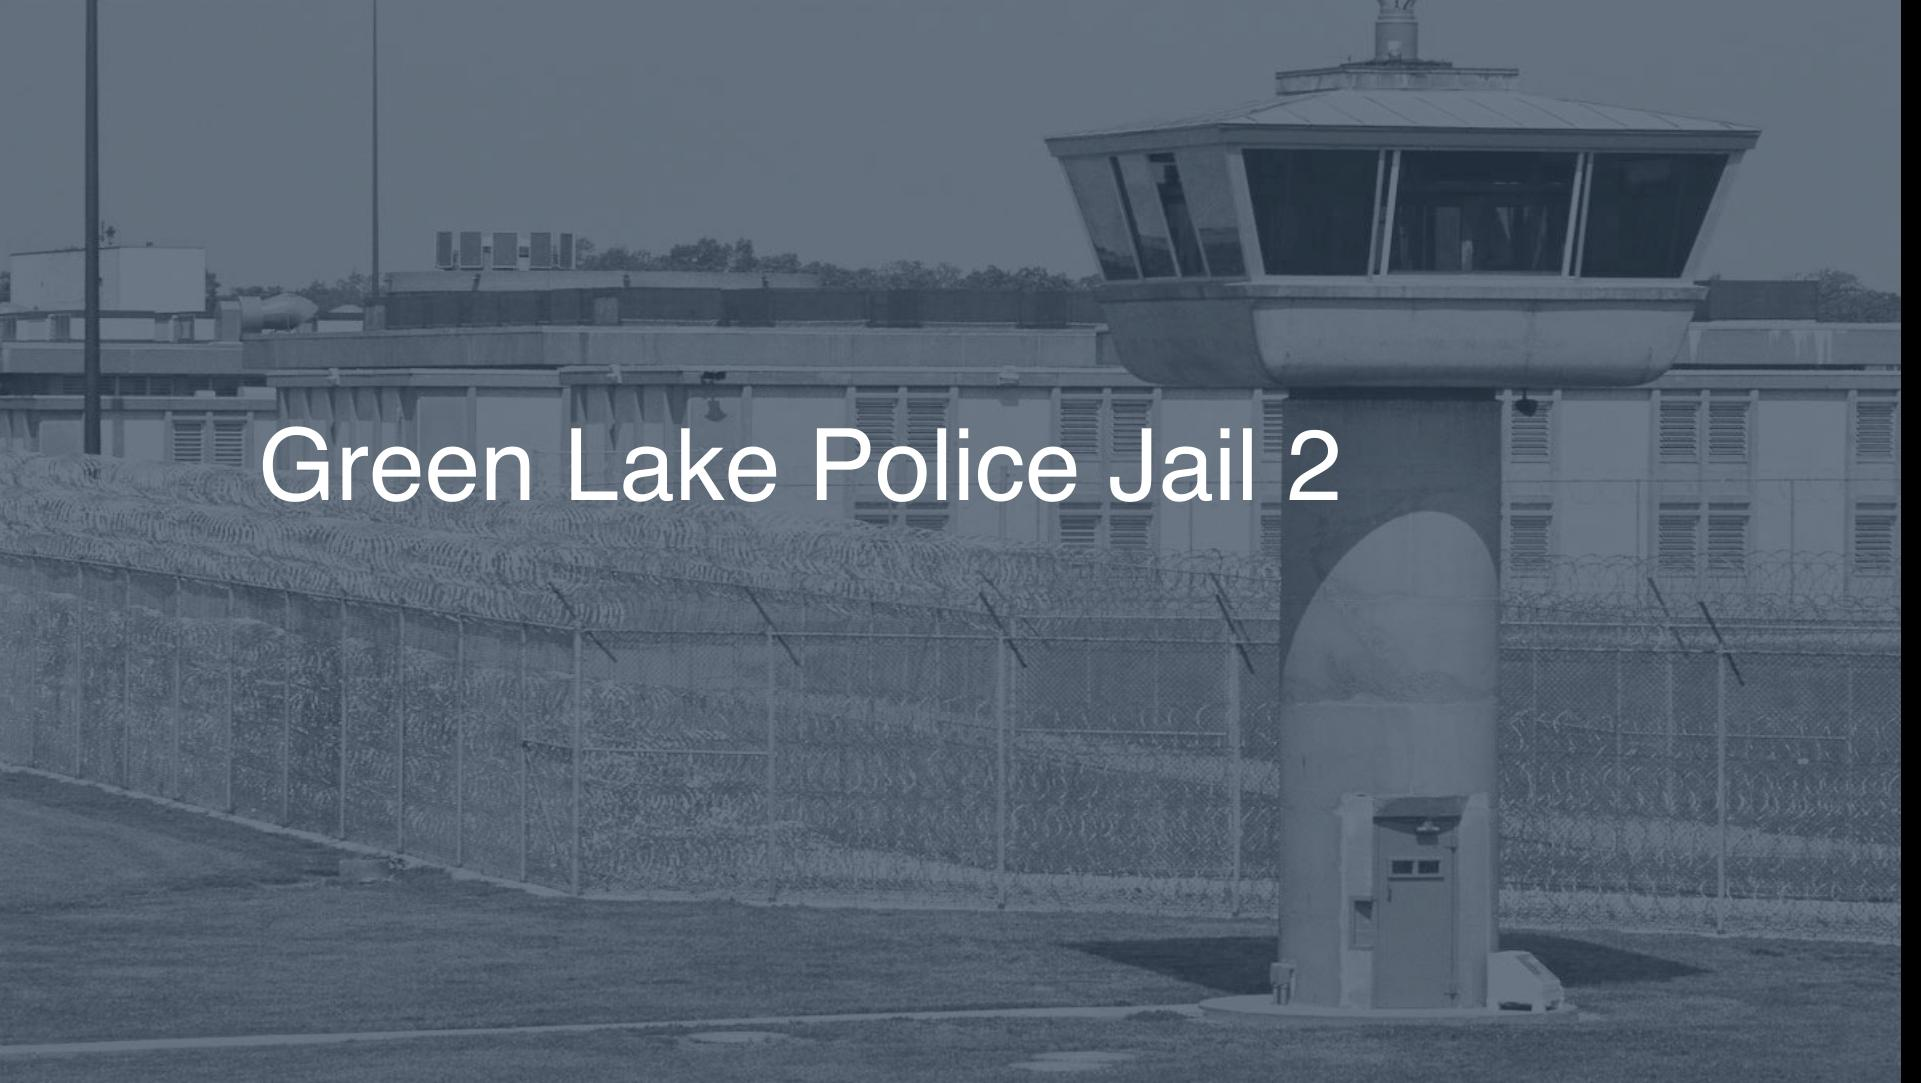 Green Lake Police Jail Inmate Search, Lookup & Services